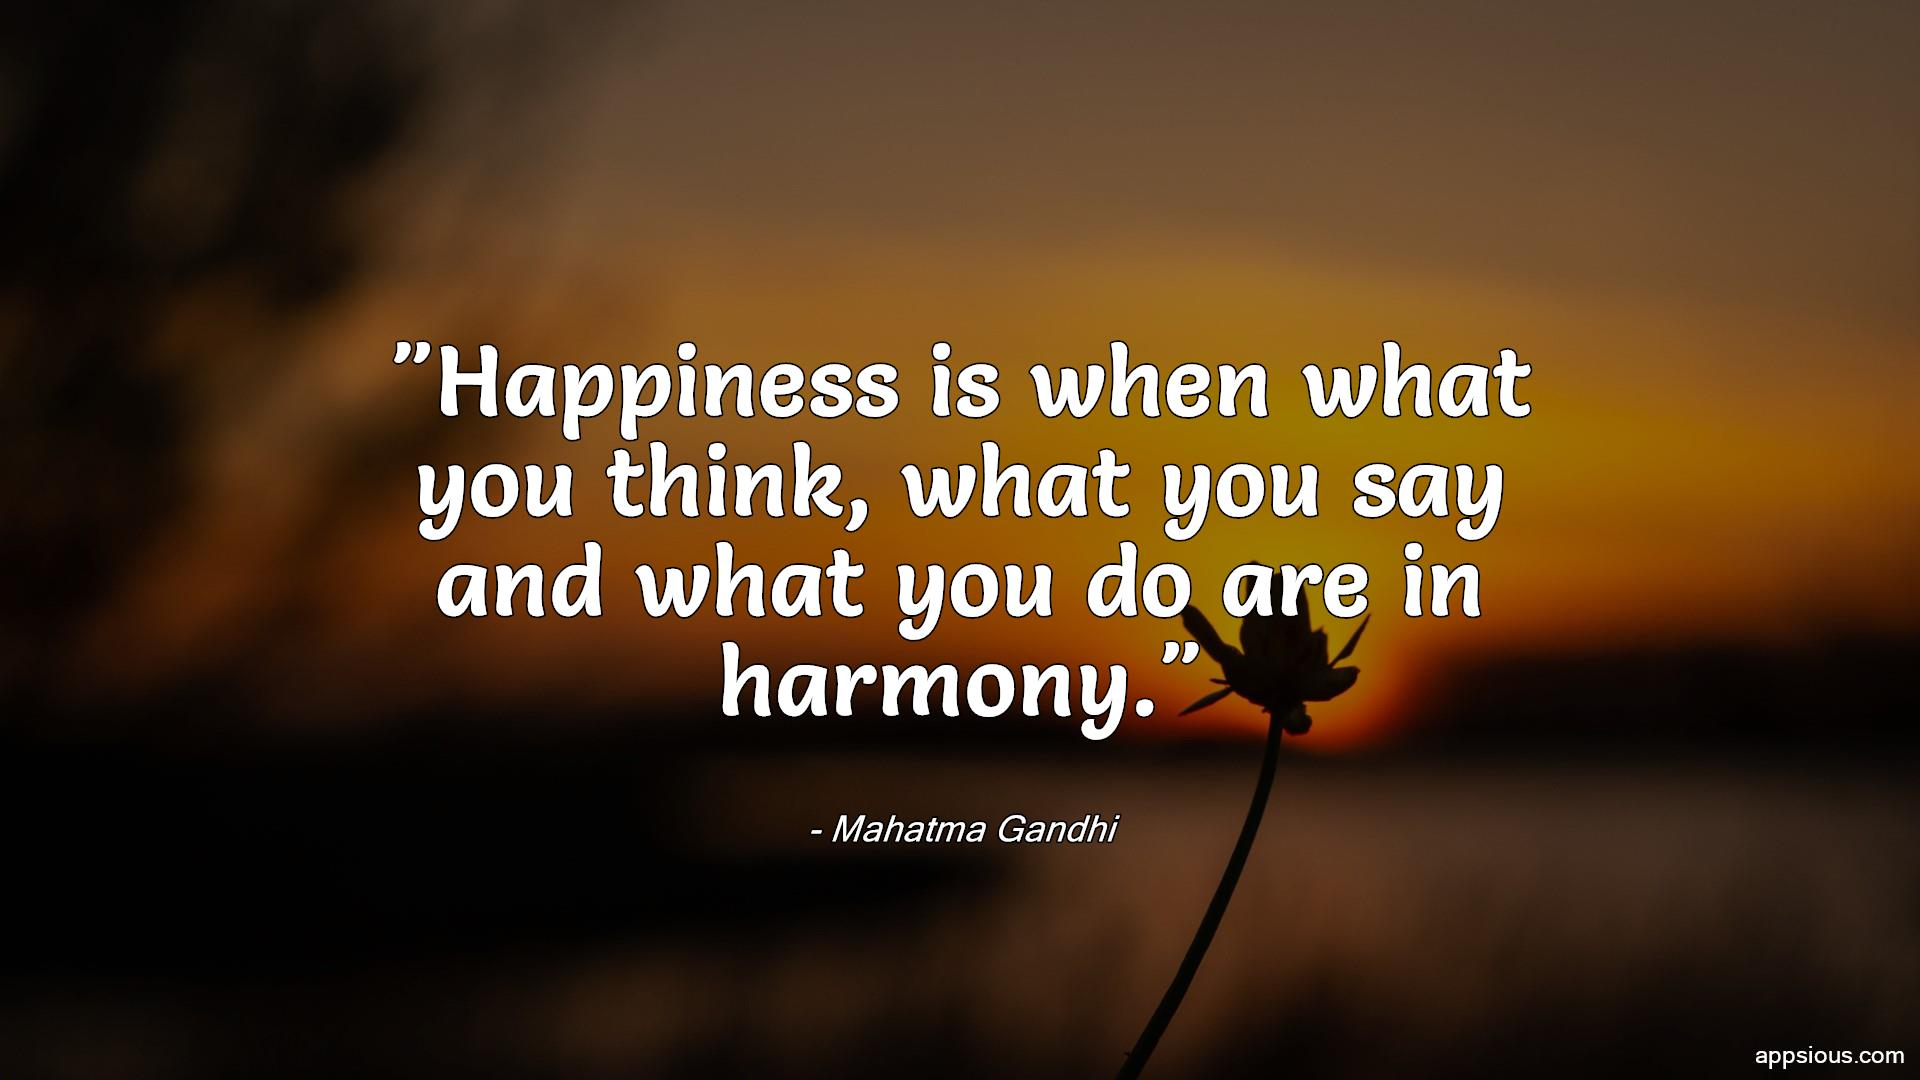 Happiness is when what you think, what you say and what you do are in harmony.